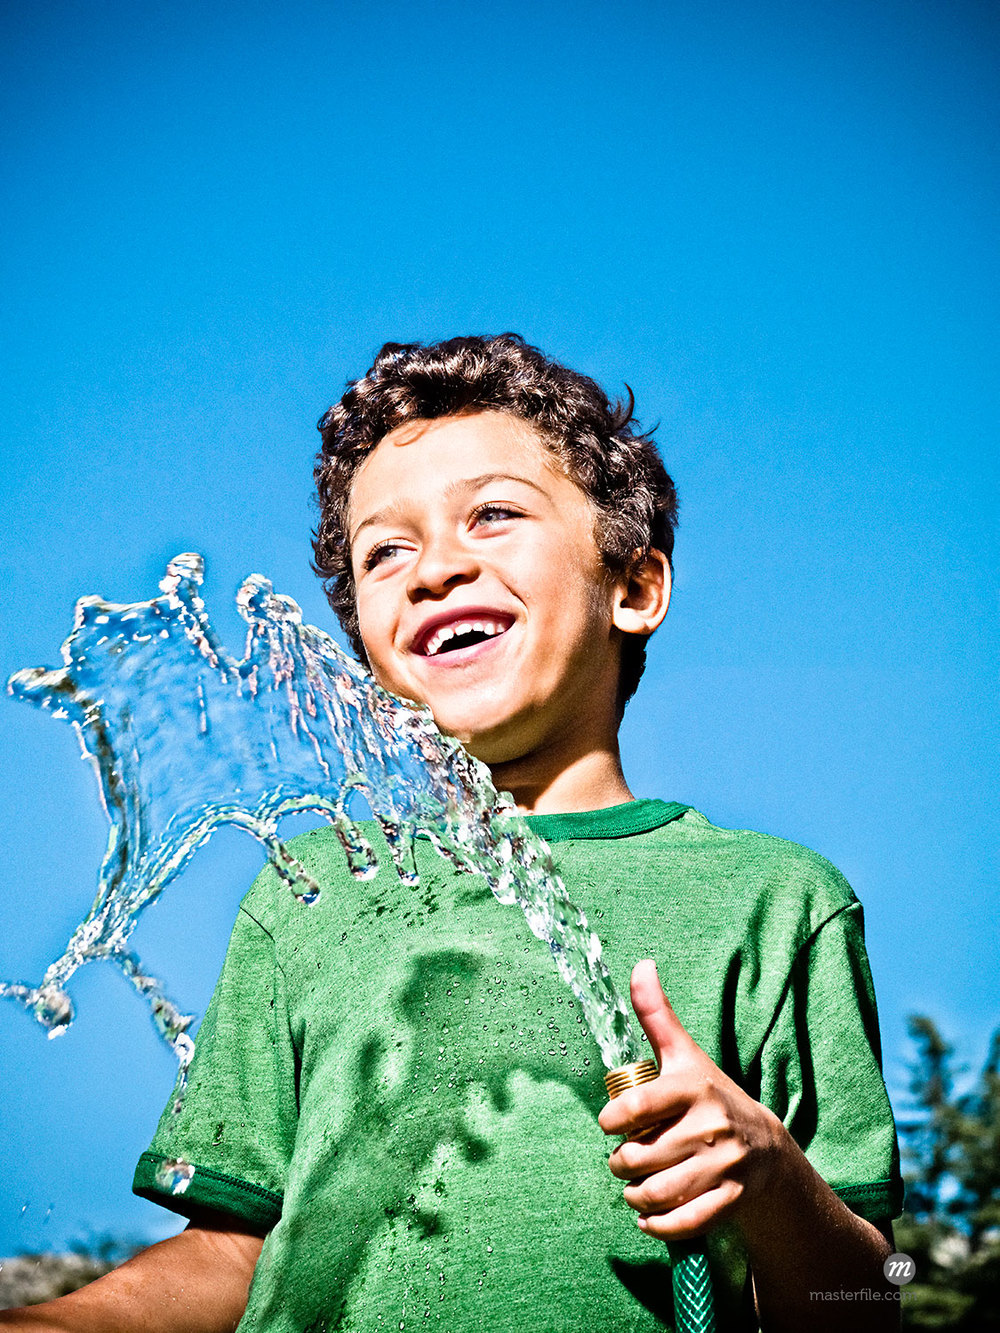 Boy in a green t-shirt holding running hose and smiling shot against a blue sky © Dana Hursey / Masterfile